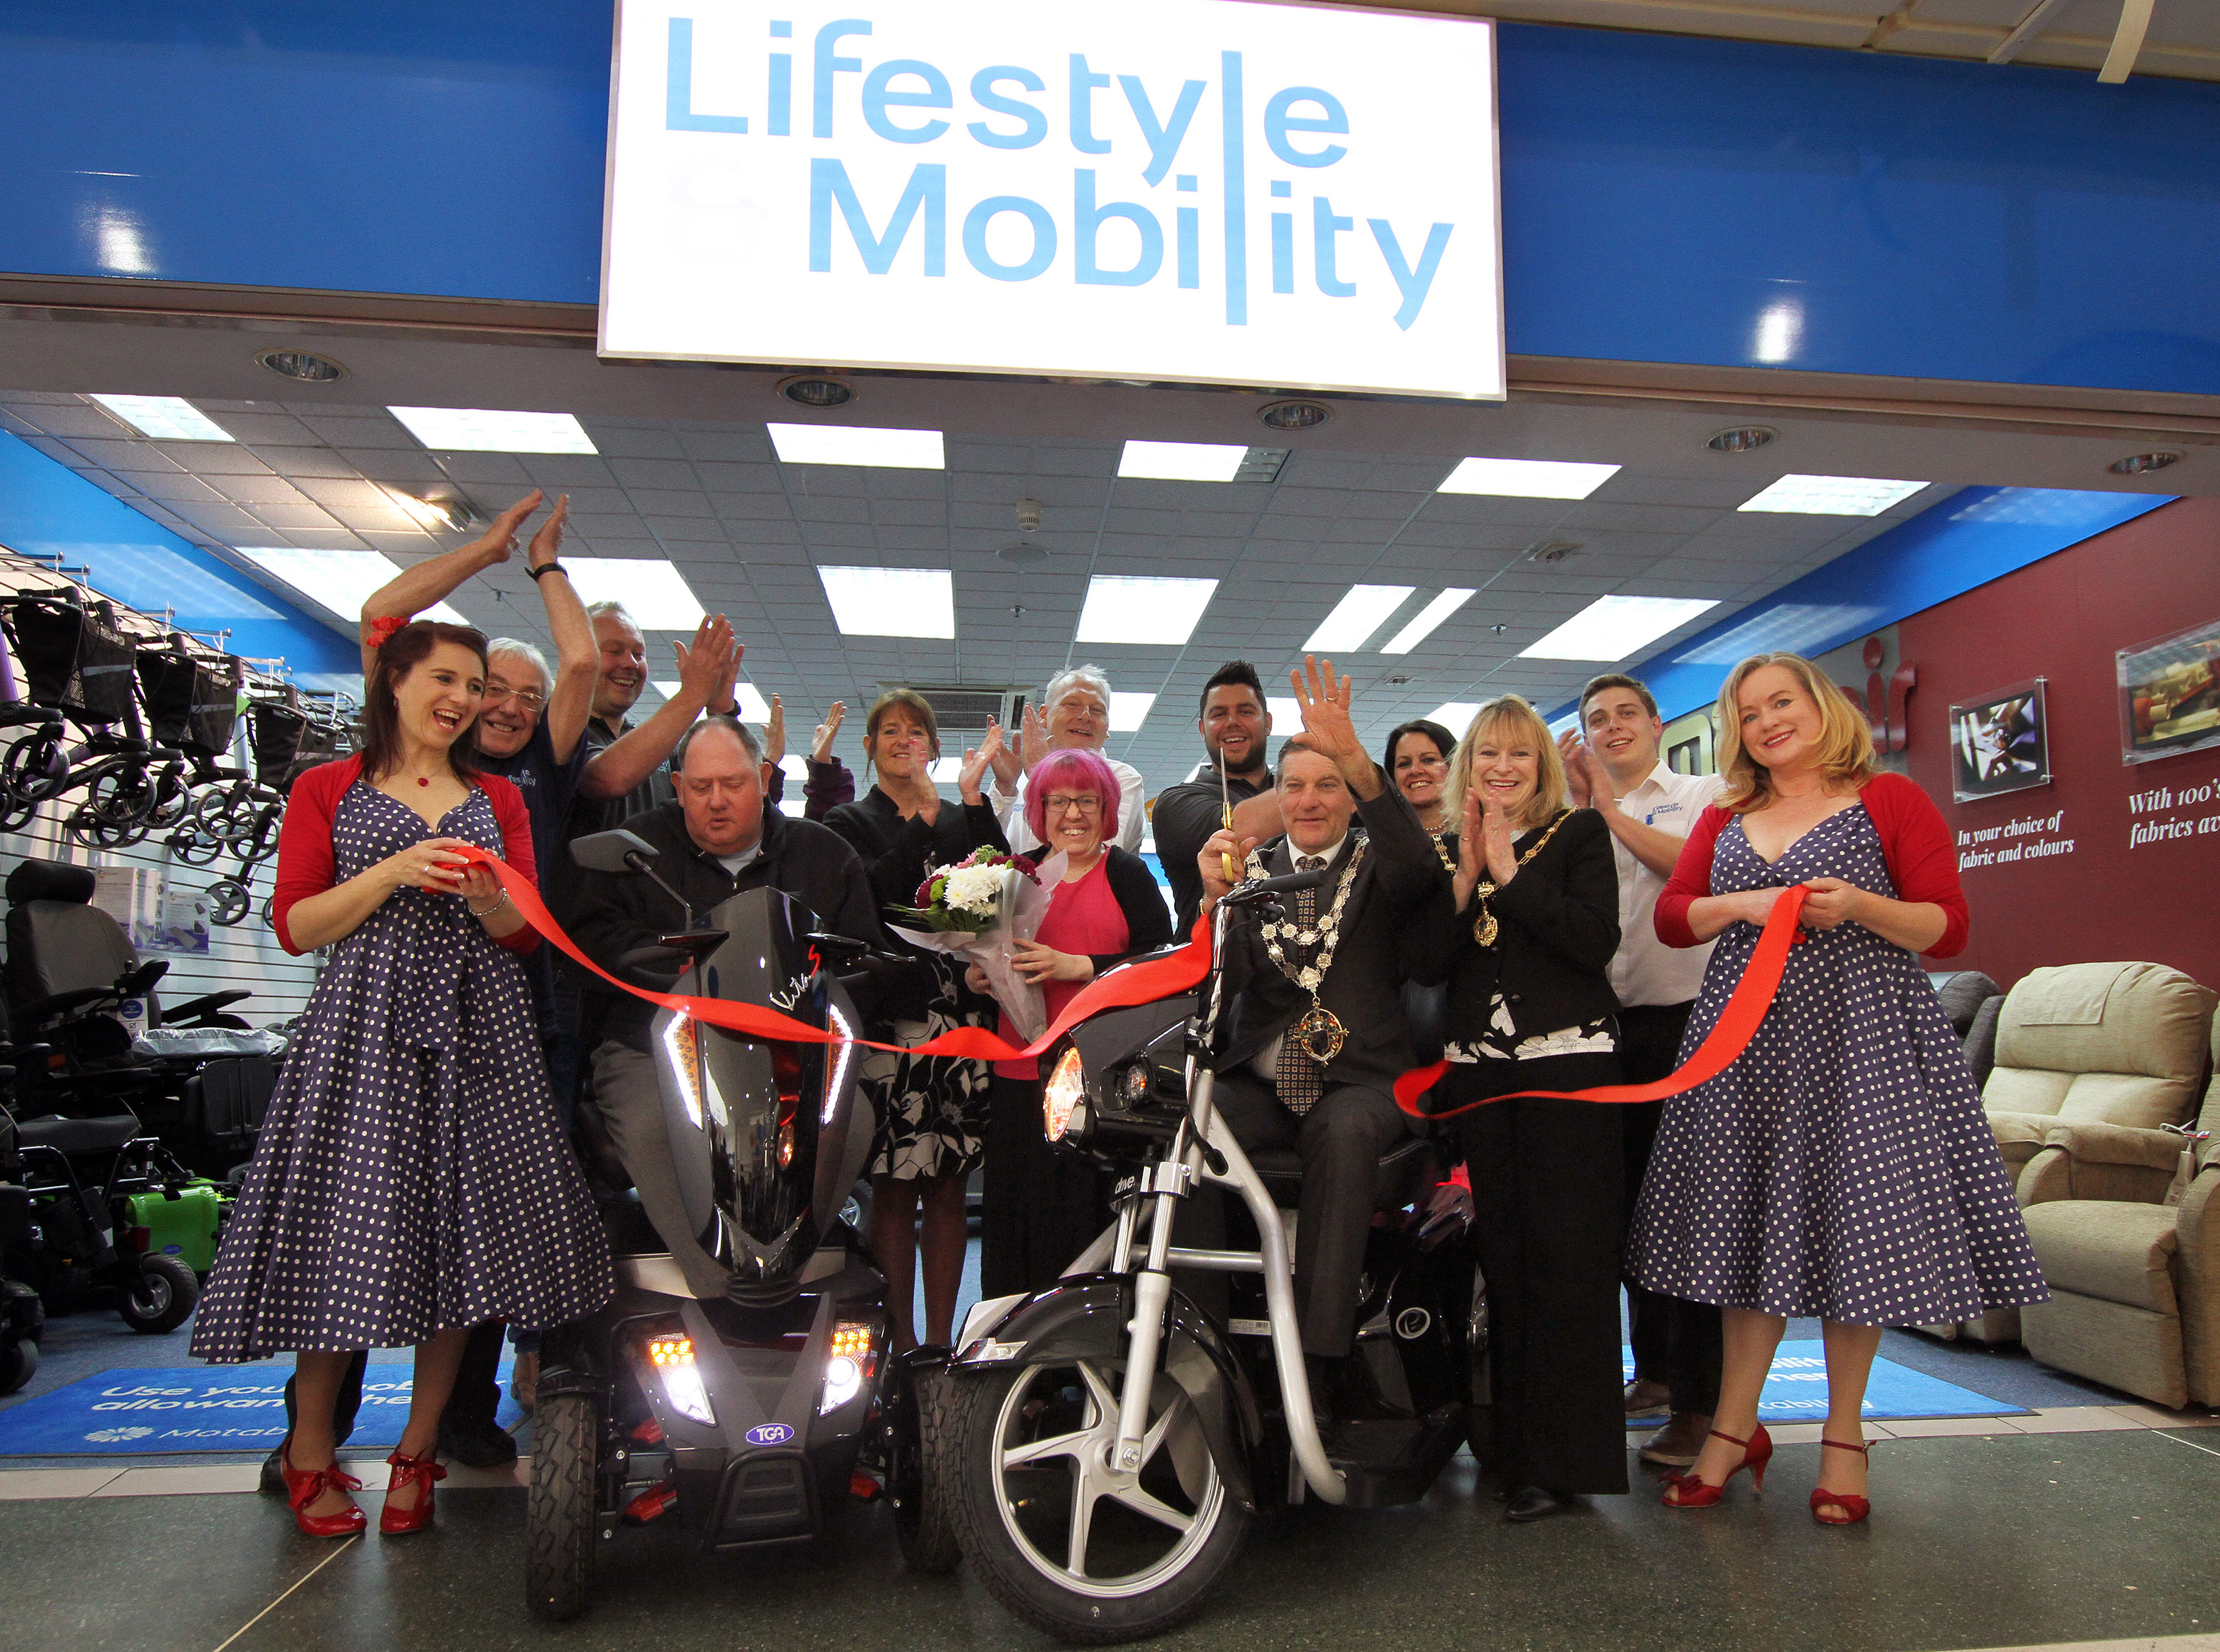 Lifestyle and Mobility tga